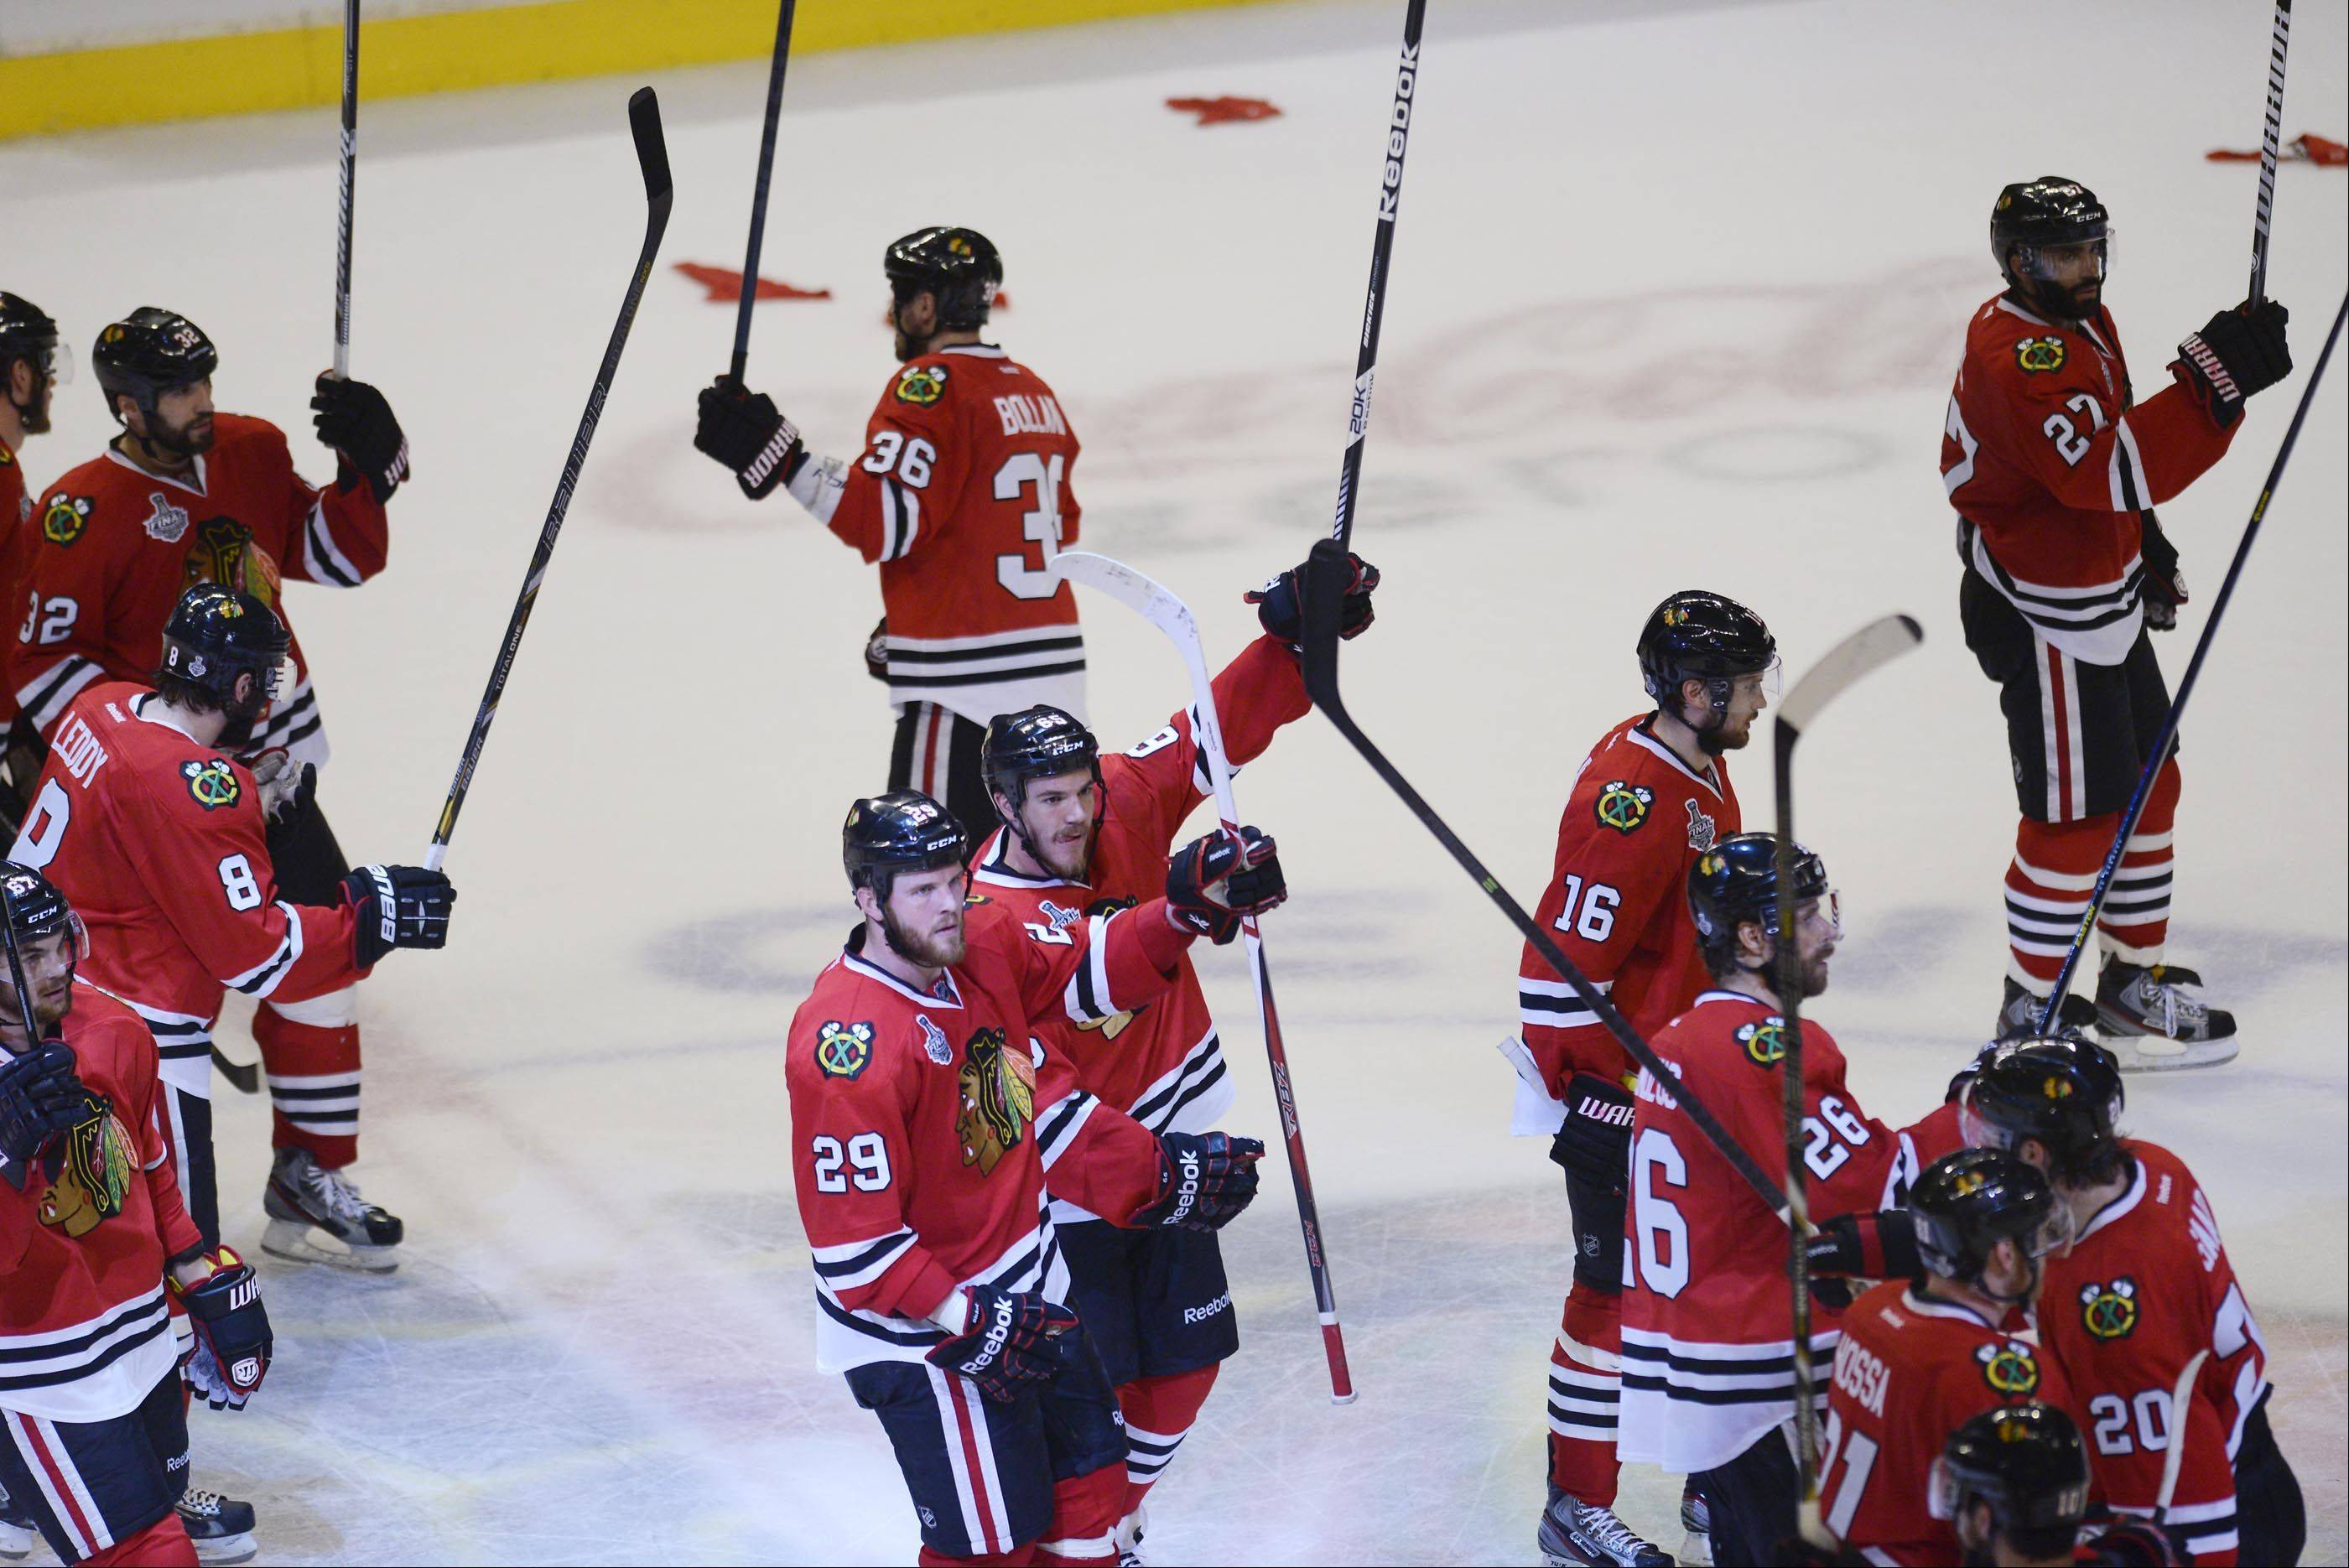 The Chicago Blackhawks raise their sticks after defeating the Boston Bruins Saturday in Game 5 of the Stanley Cup Finals at the United Center in Chicago.